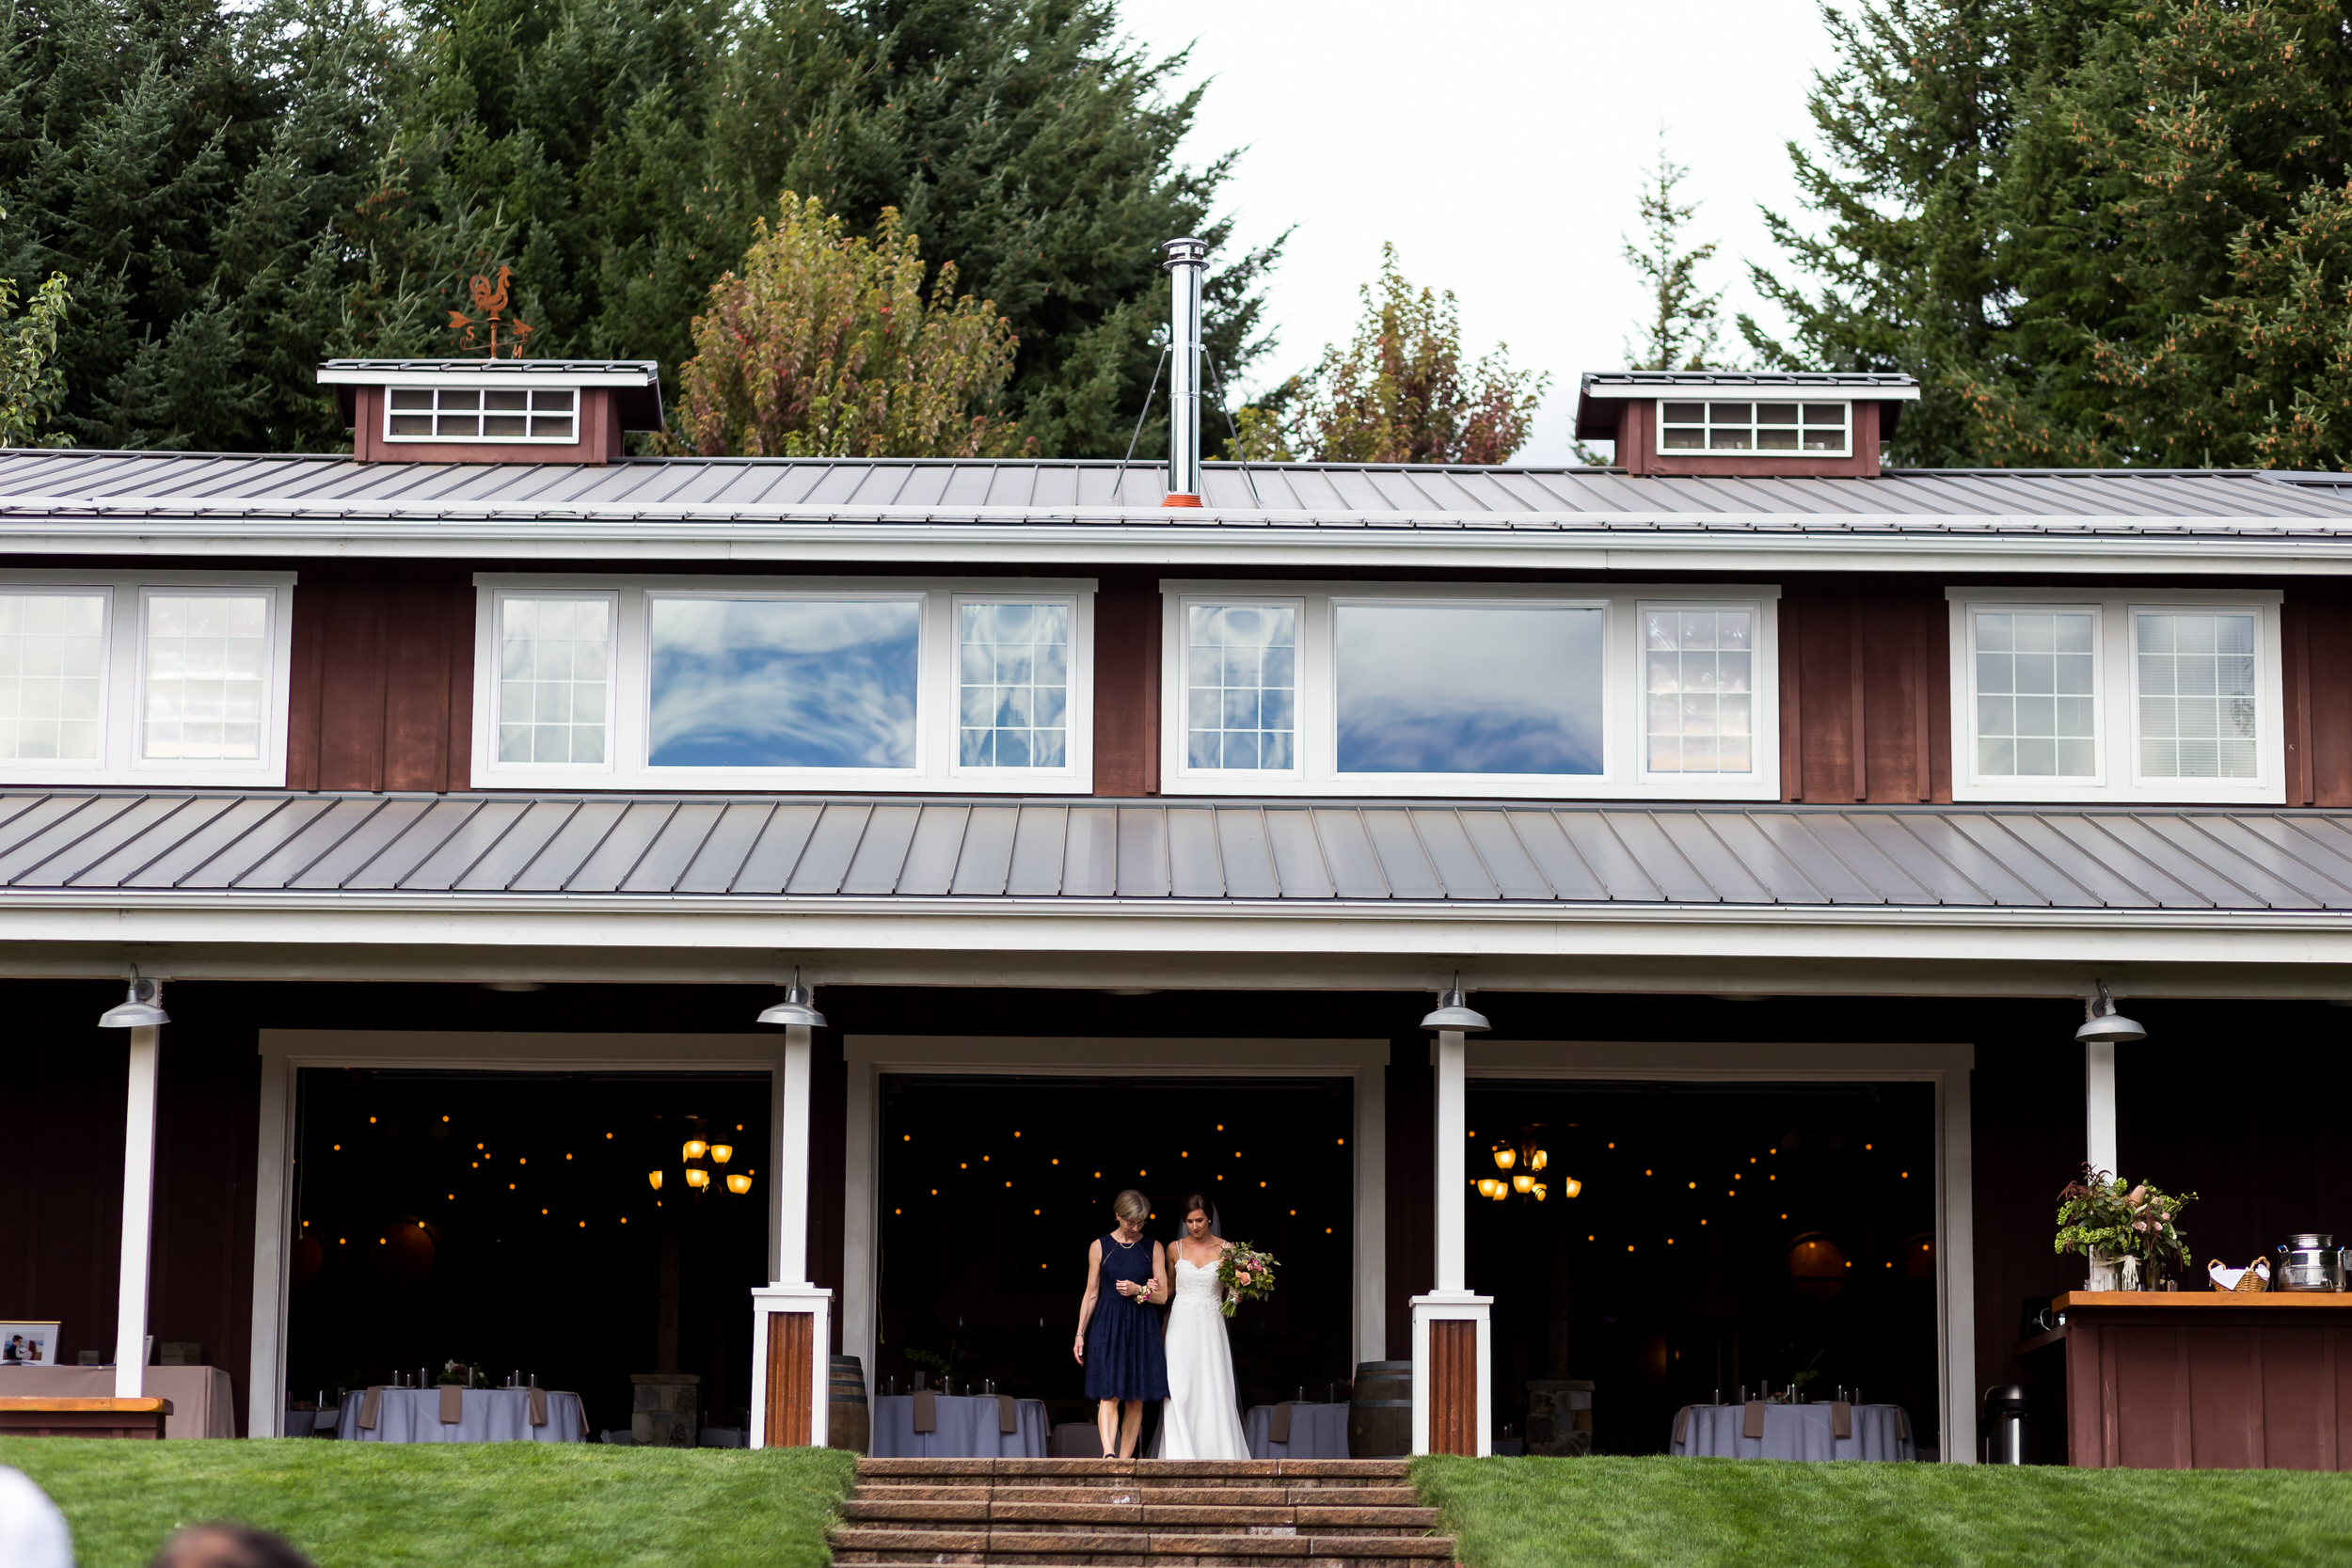 Gorge_Crest_Vineyards_Wedding_Stark_Photography_029